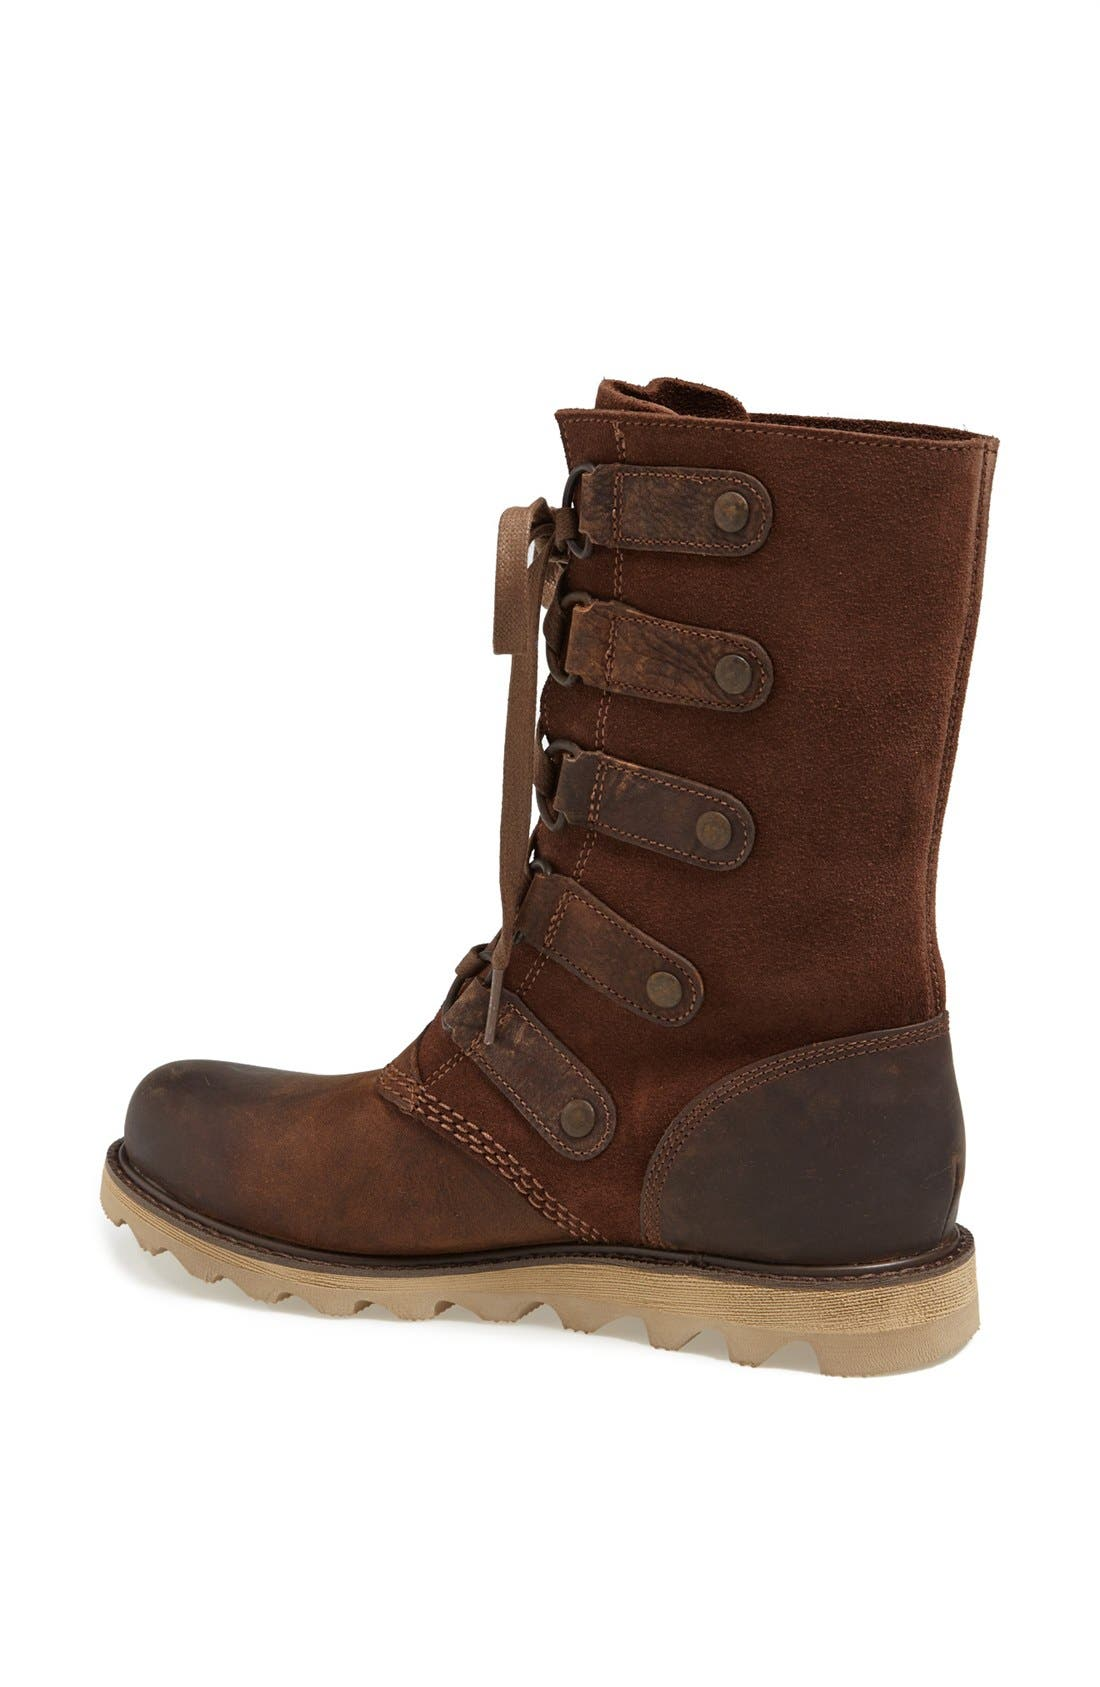 Alternate Image 2  - SOREL 'Scotia' Lace-Up Waterproof Leather Boot (Women)